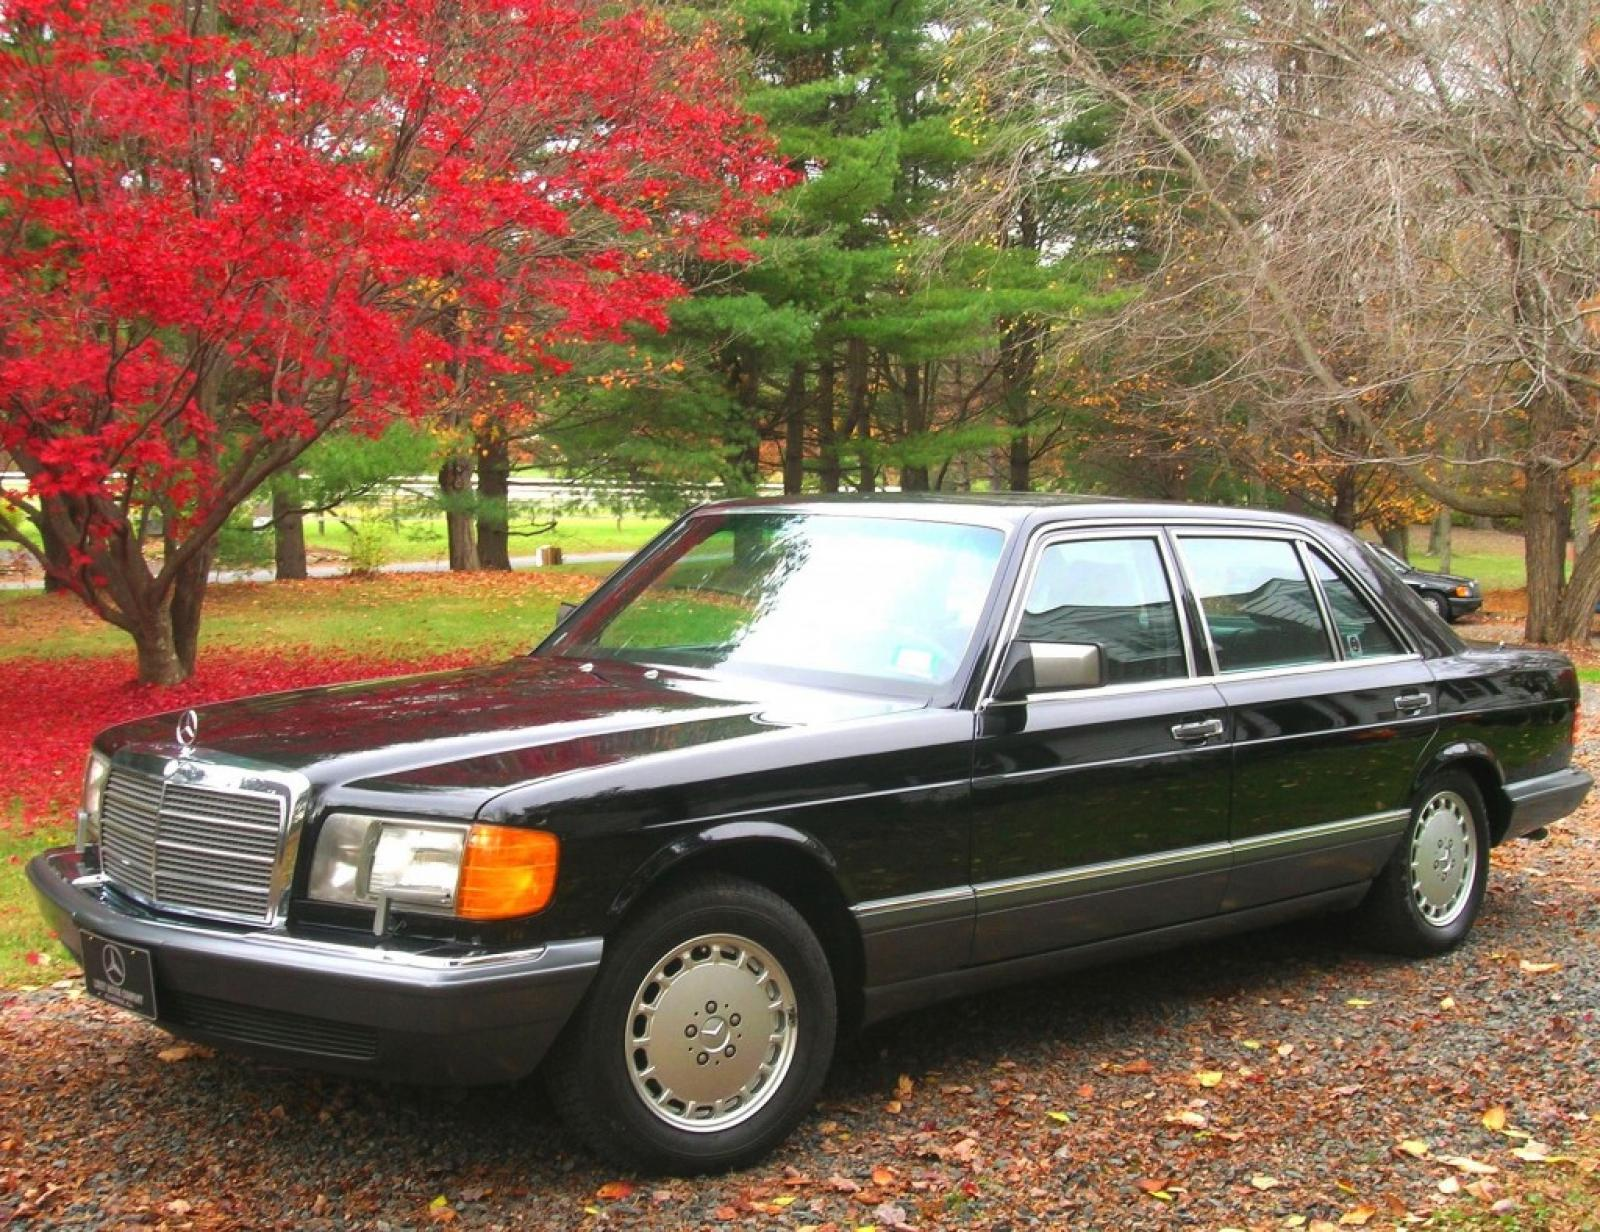 1991 mercedes benz 560 class information and photos for 1991 mercedes benz